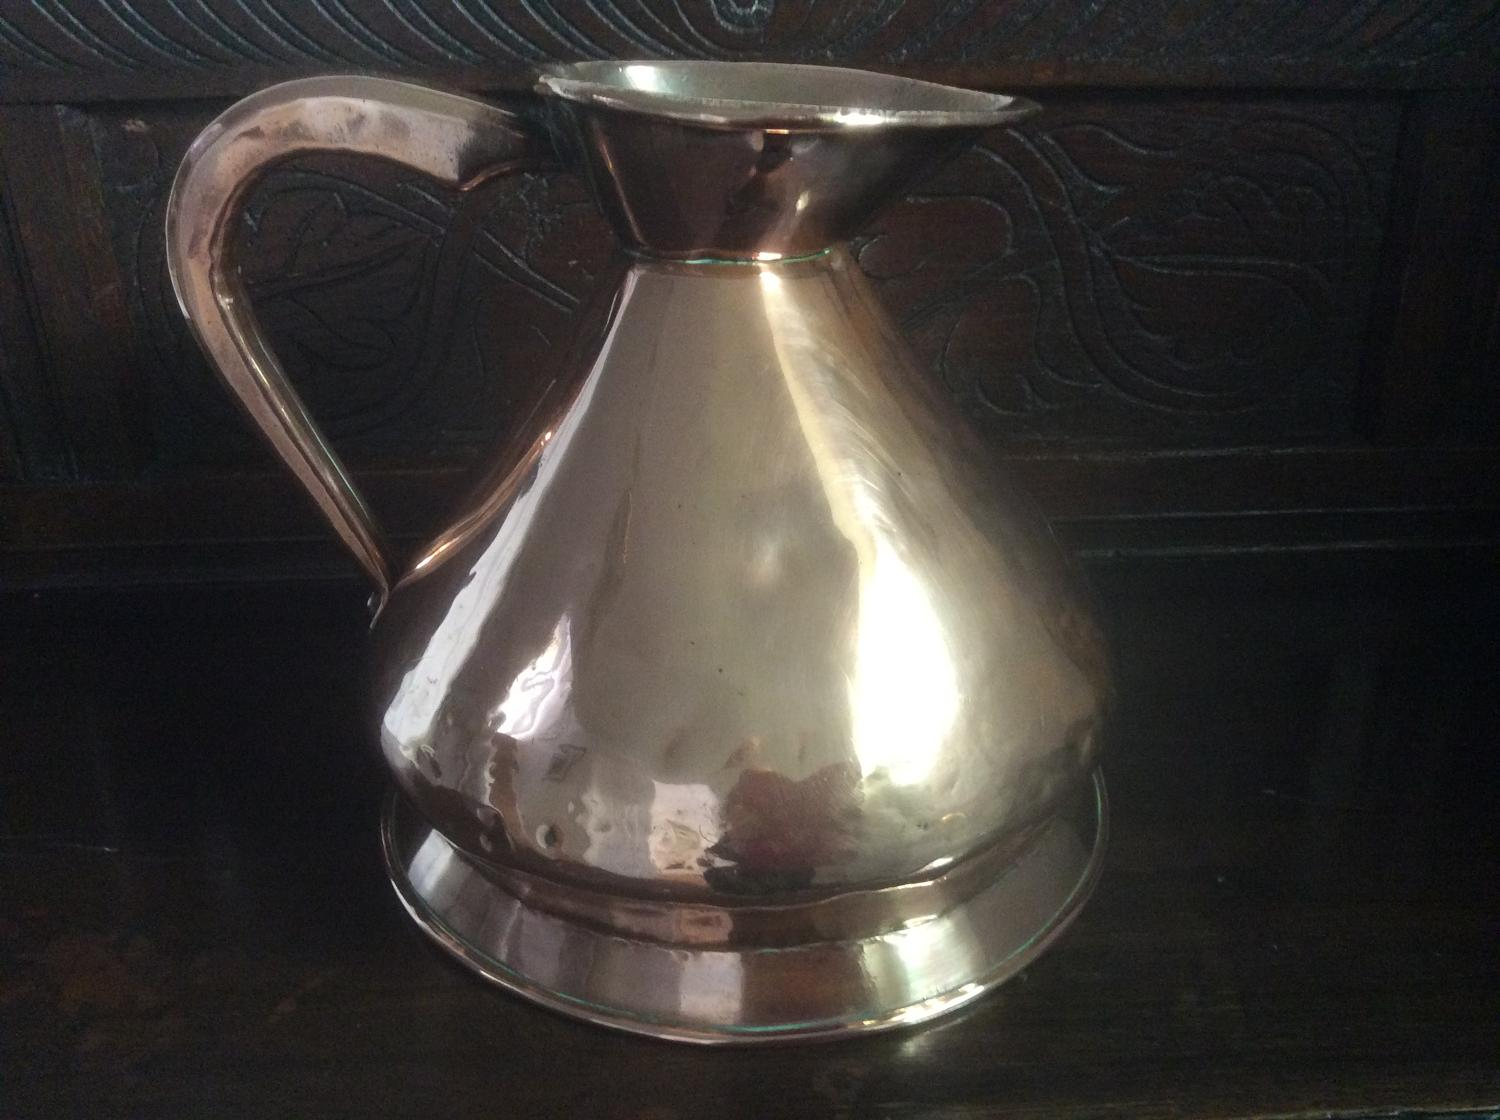 19th century one gallon copper measure